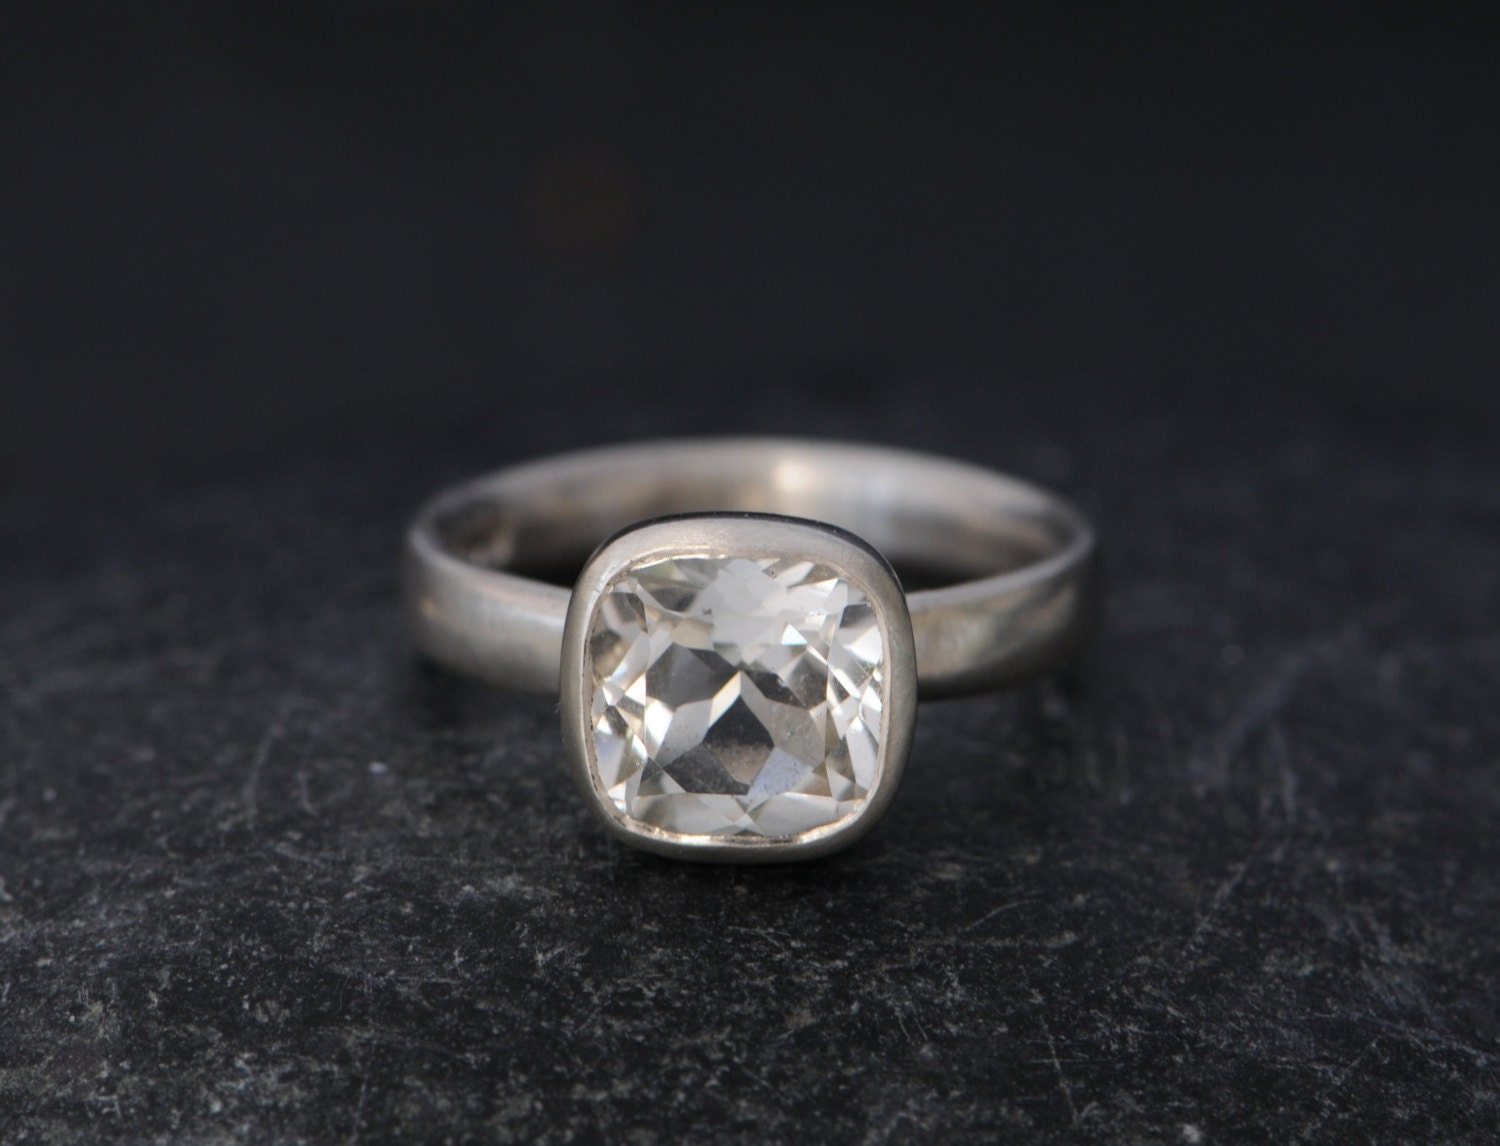 White Topaz Solitaire Ring  White Topaz Engagement Ring  White Topaz Cushion Cut Ring  Square White Topaz  Made To Order  FREE SHIPPING